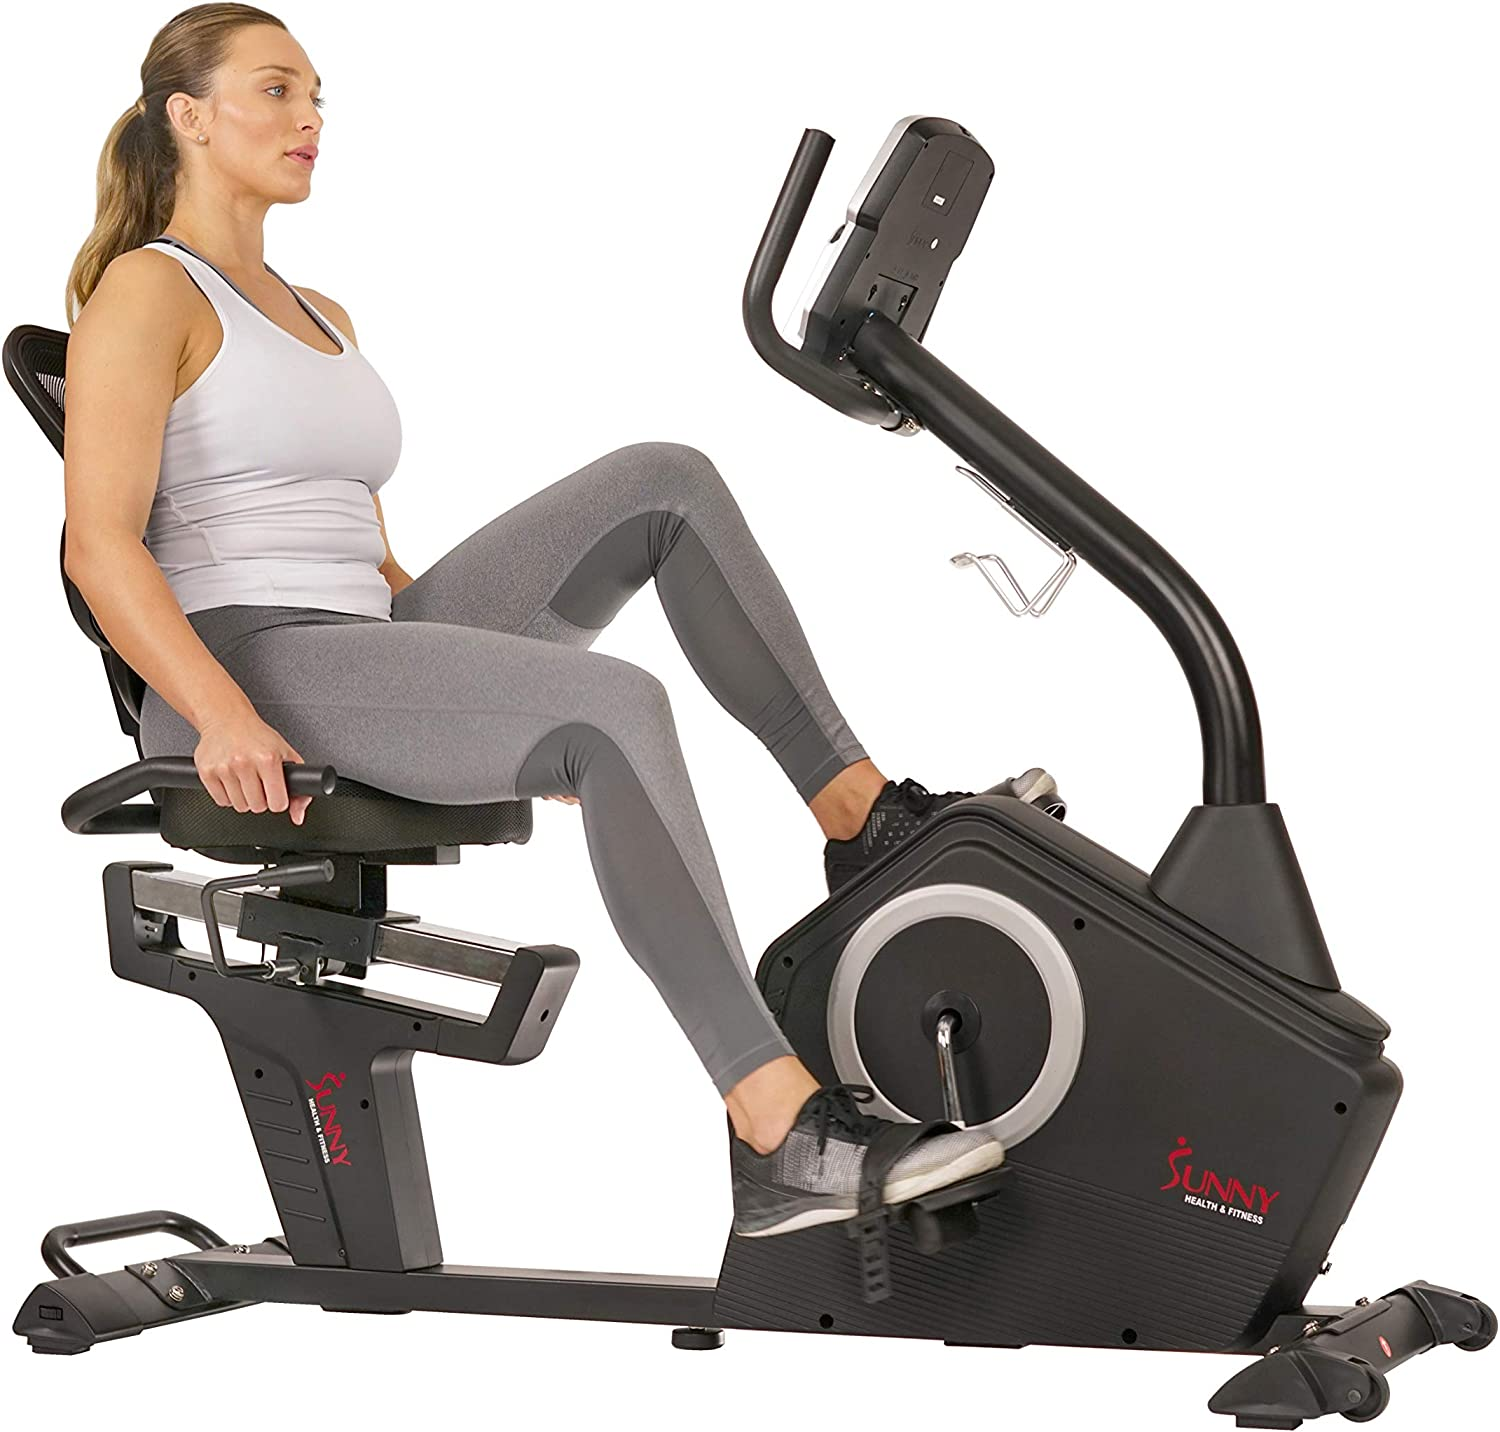 Sunny Health Fitness Magnetic Recumbent Exercise Bike with Large Soft Comfort Seat with Mesh Back, 12 Preset or Custom Workouts and Advanced Performance Monitor – SF-RB4850